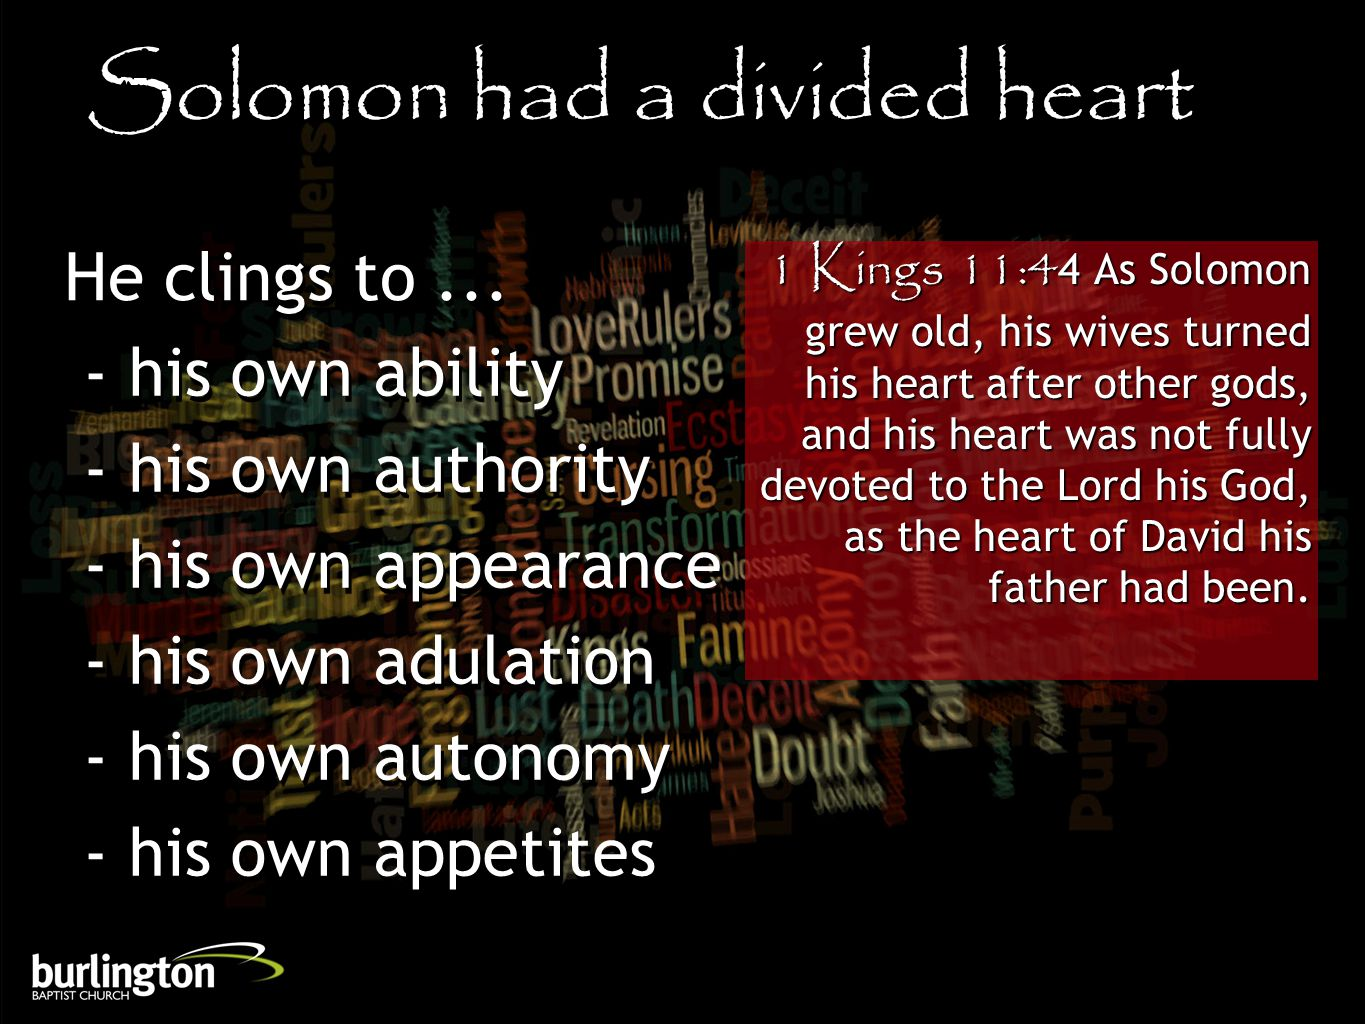 1 Kings 11:44 As Solomon grew old, his wives turned his heart after other gods, and his heart was not fully devoted to the Lord his God, as the heart of David his father had been.